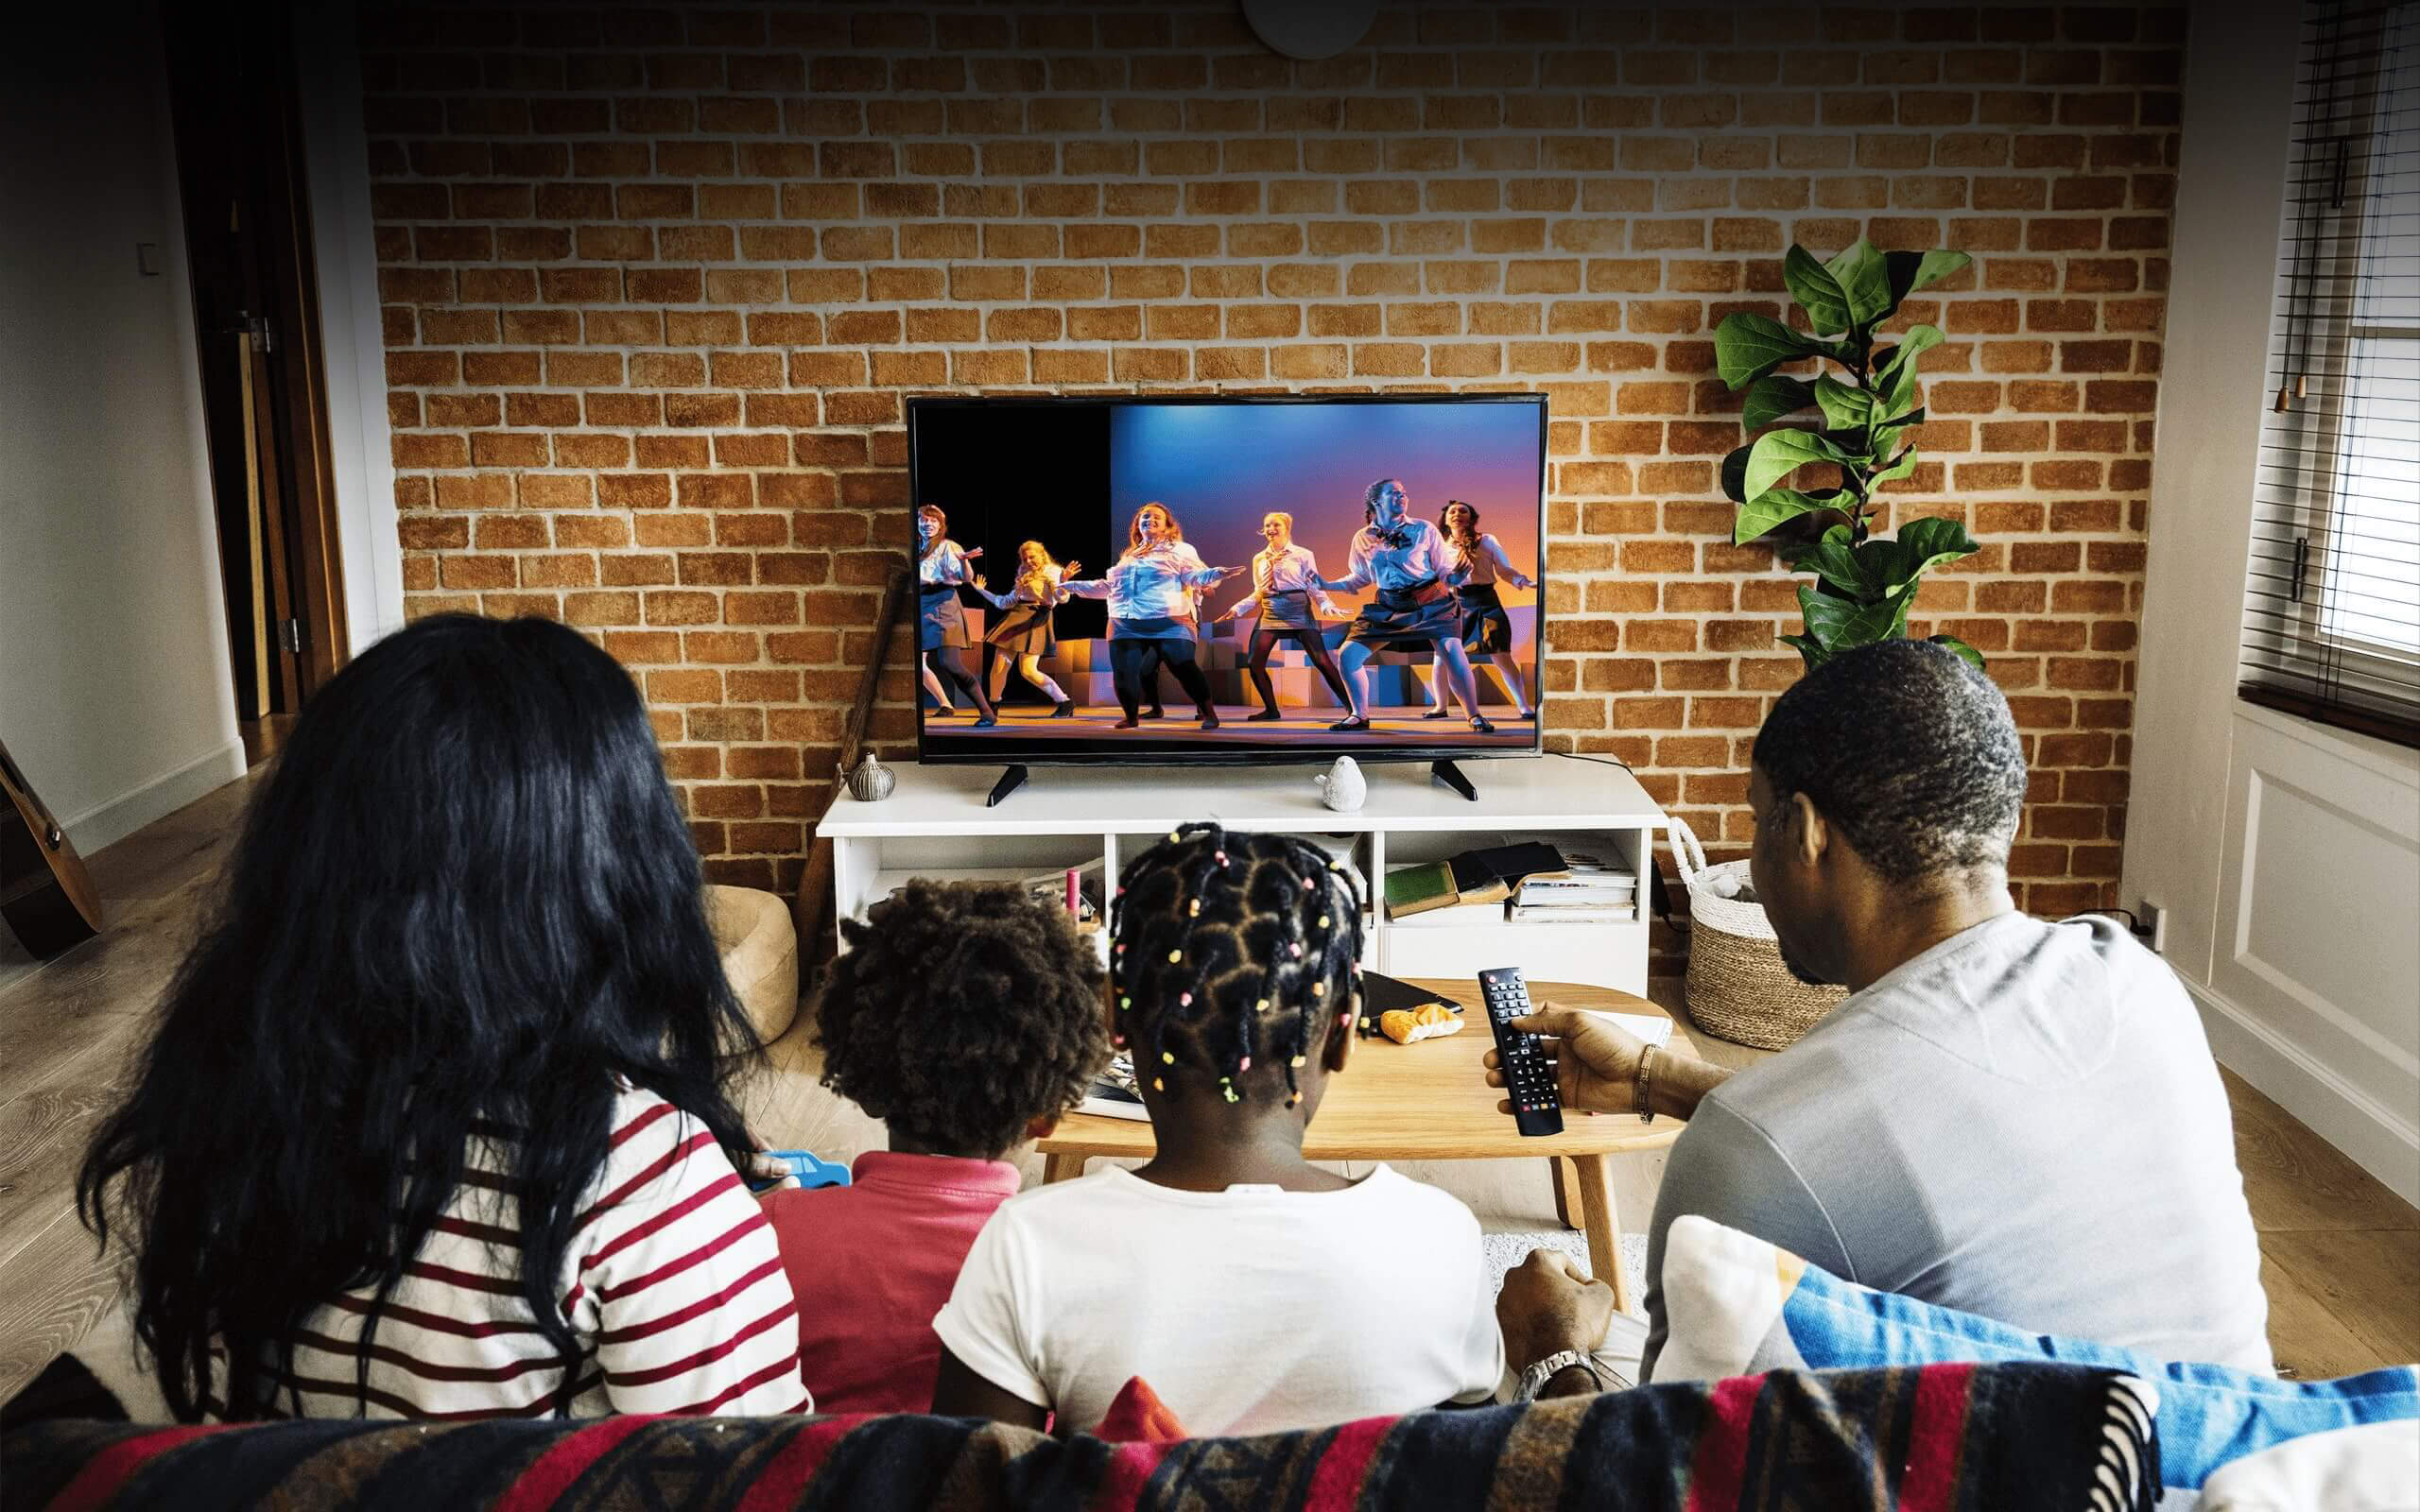 A family sat on a sofa watching TV